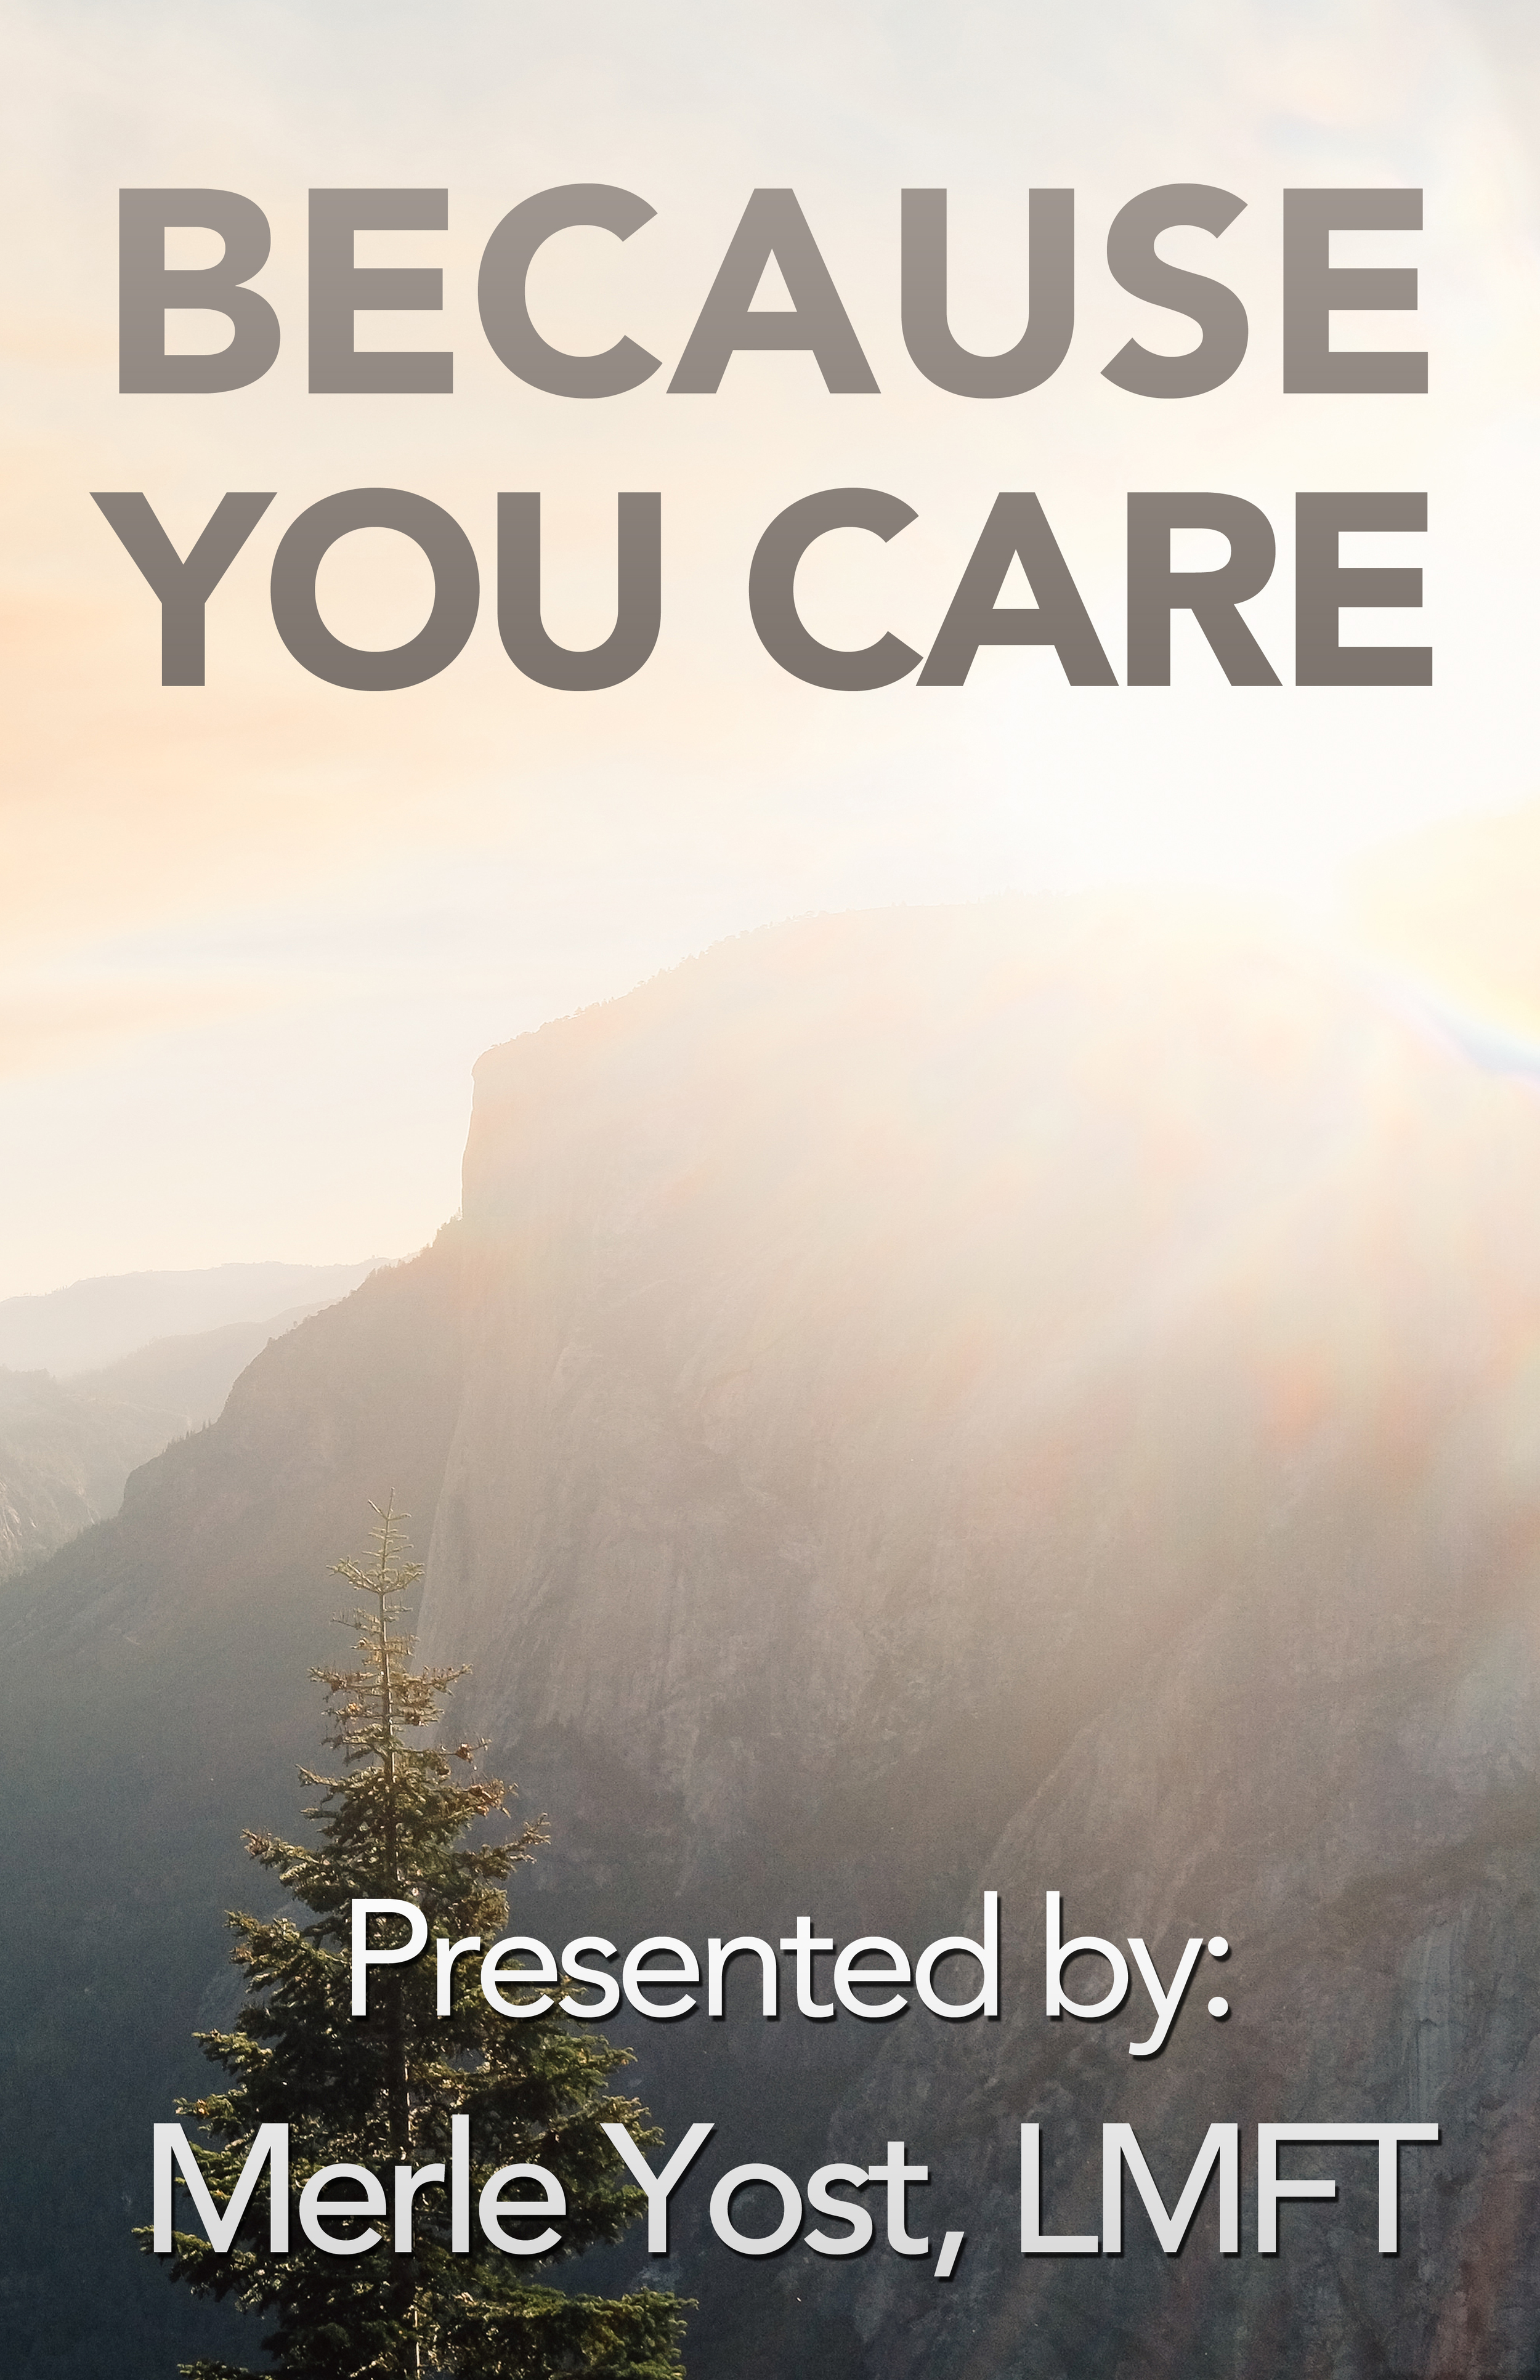 Because you care poster